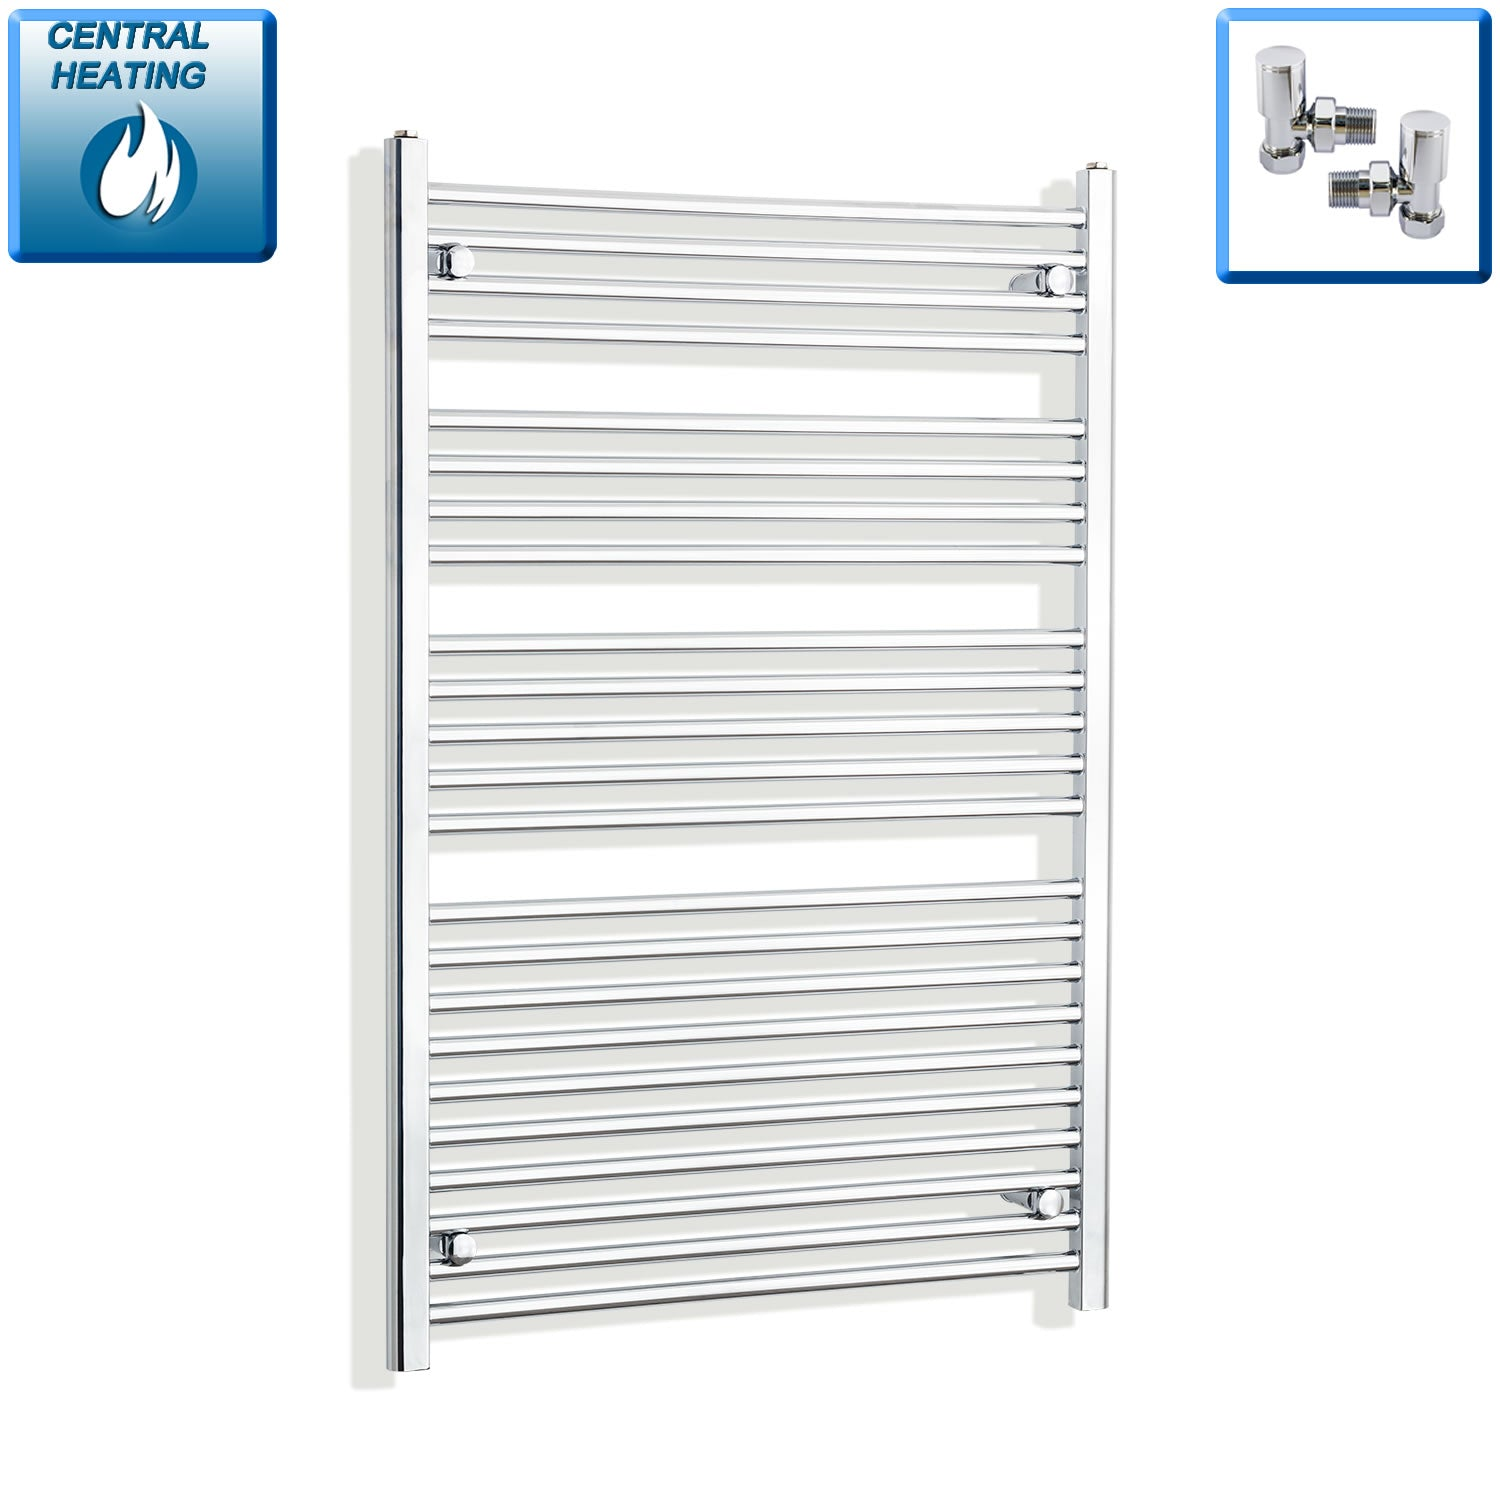 850mm Wide 1200mm High Chrome Towel Rail Radiator With Angled Valve